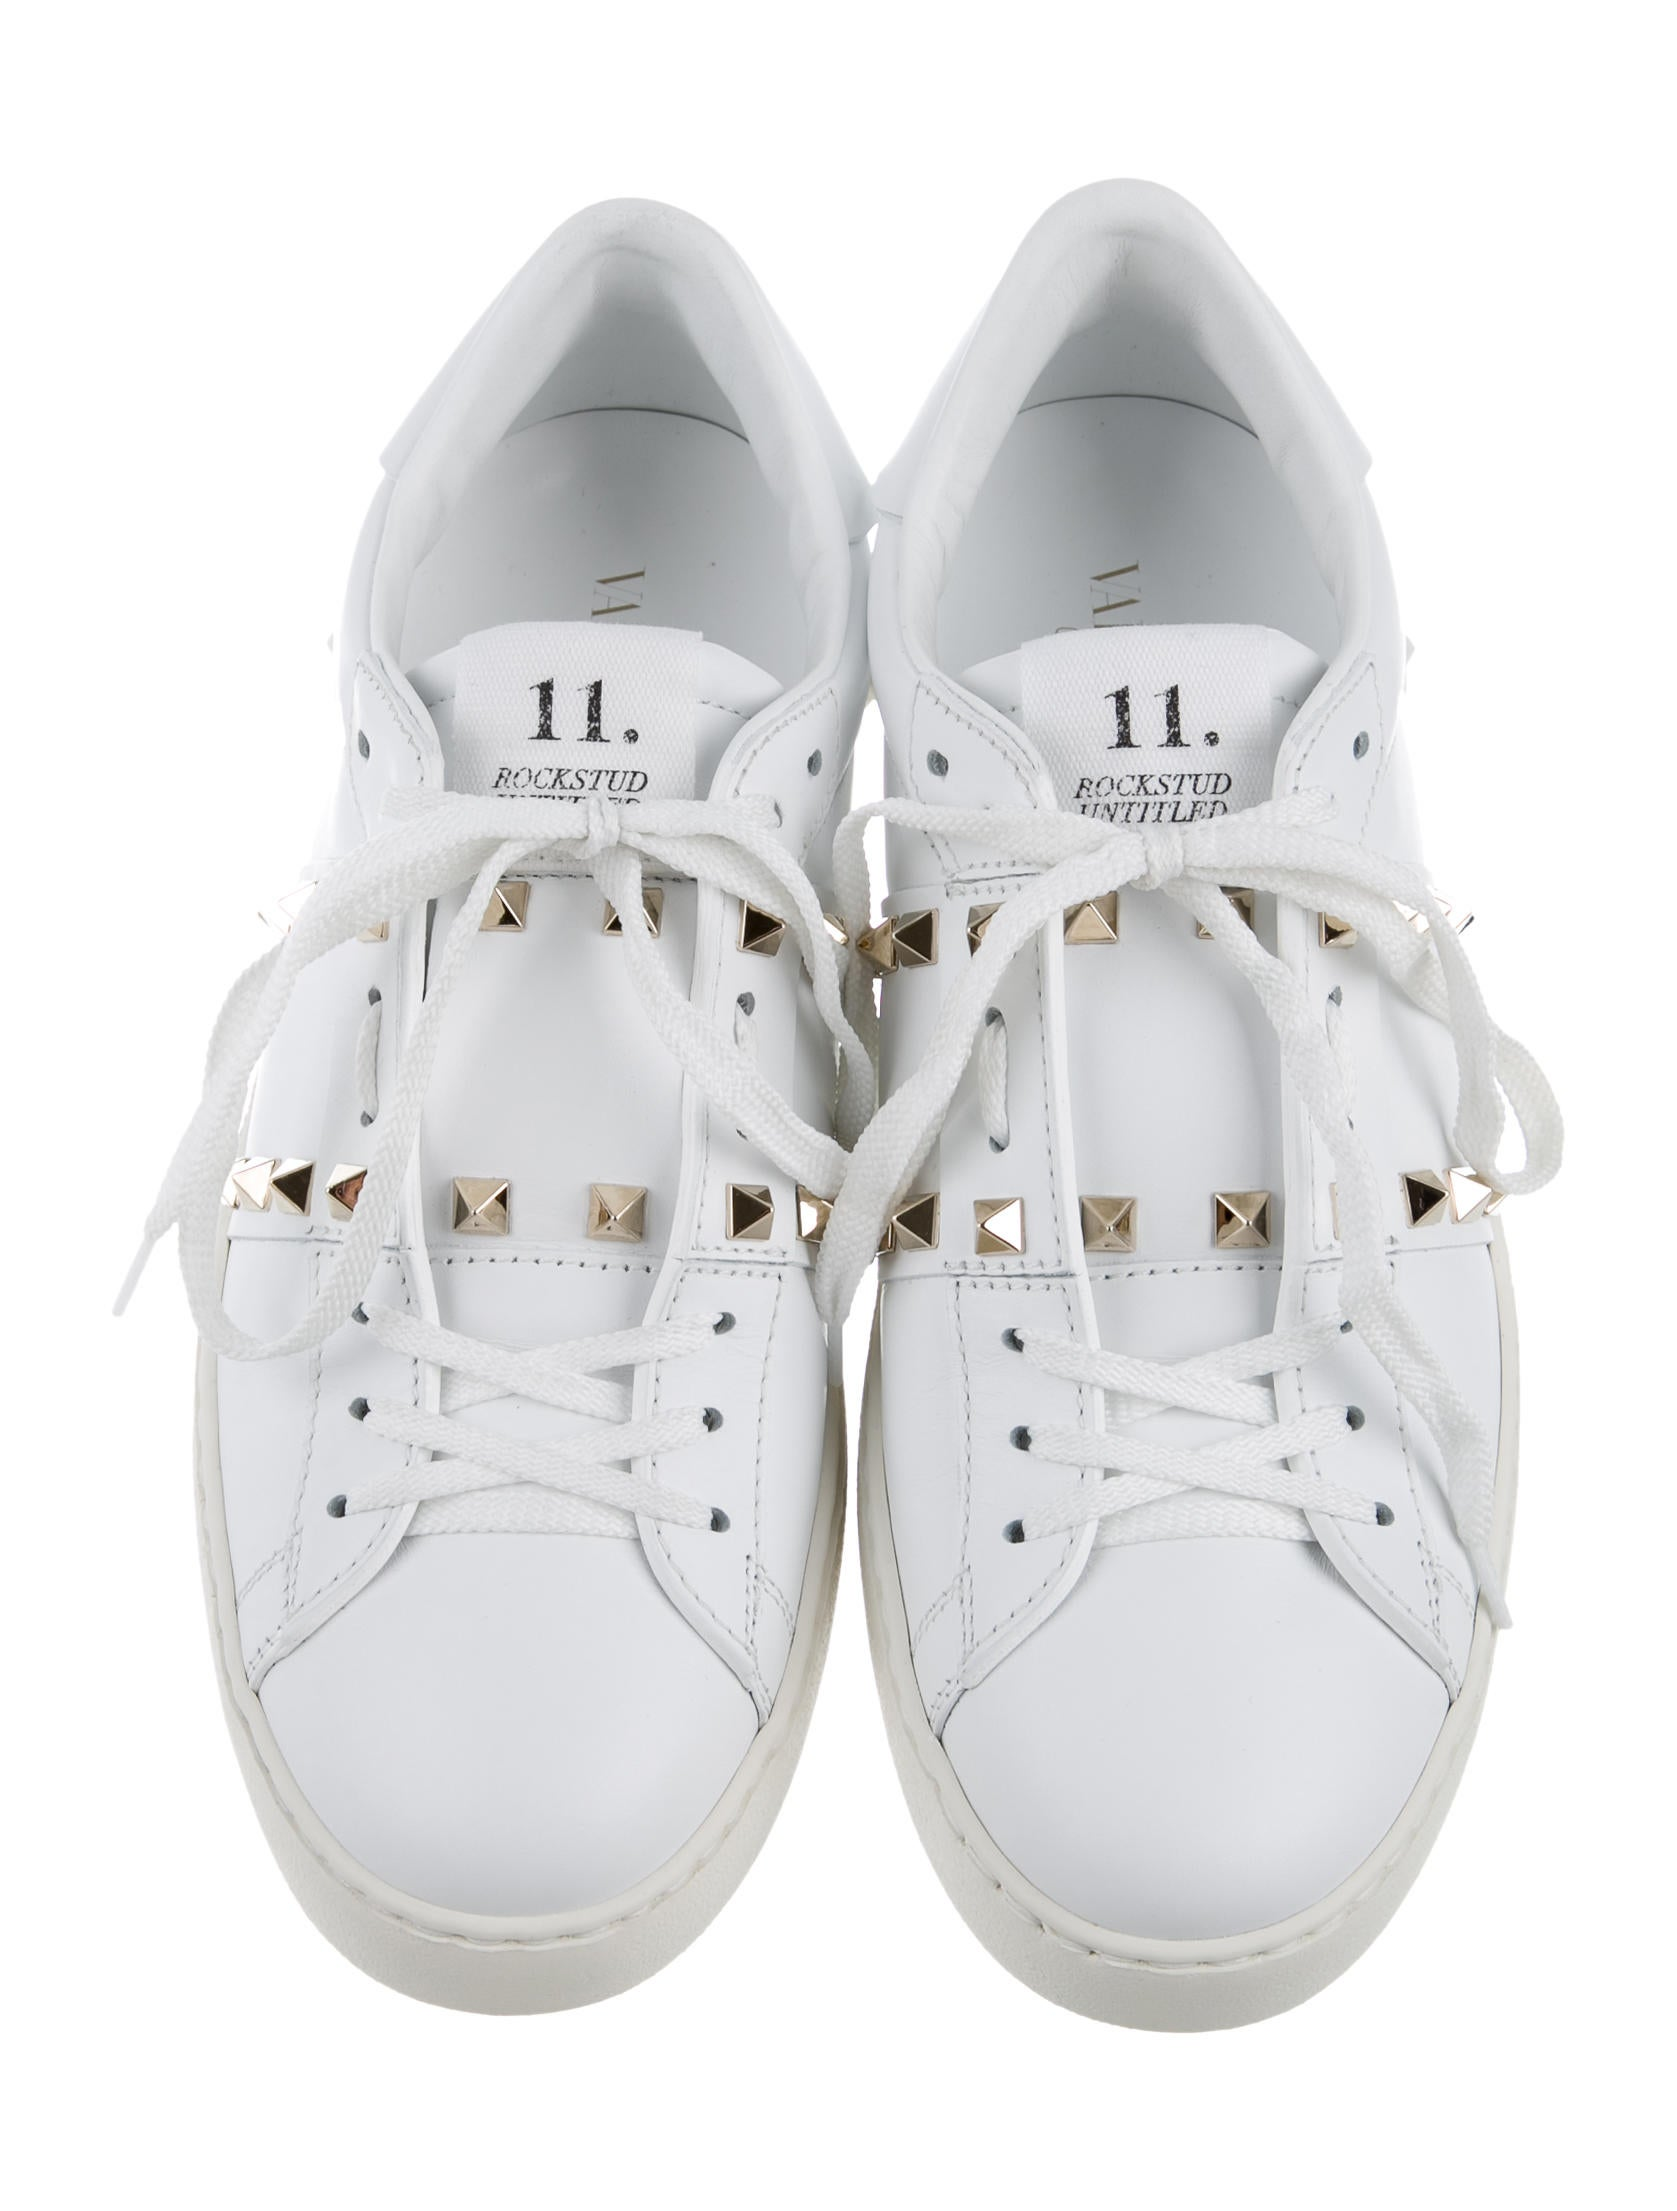 Valentino 2018 Rockstud Untitled Sneakers w/ Tags cheap sale with paypal free shipping how much free shipping for nice outlet best under $60 cheap online hwgJpVhP1